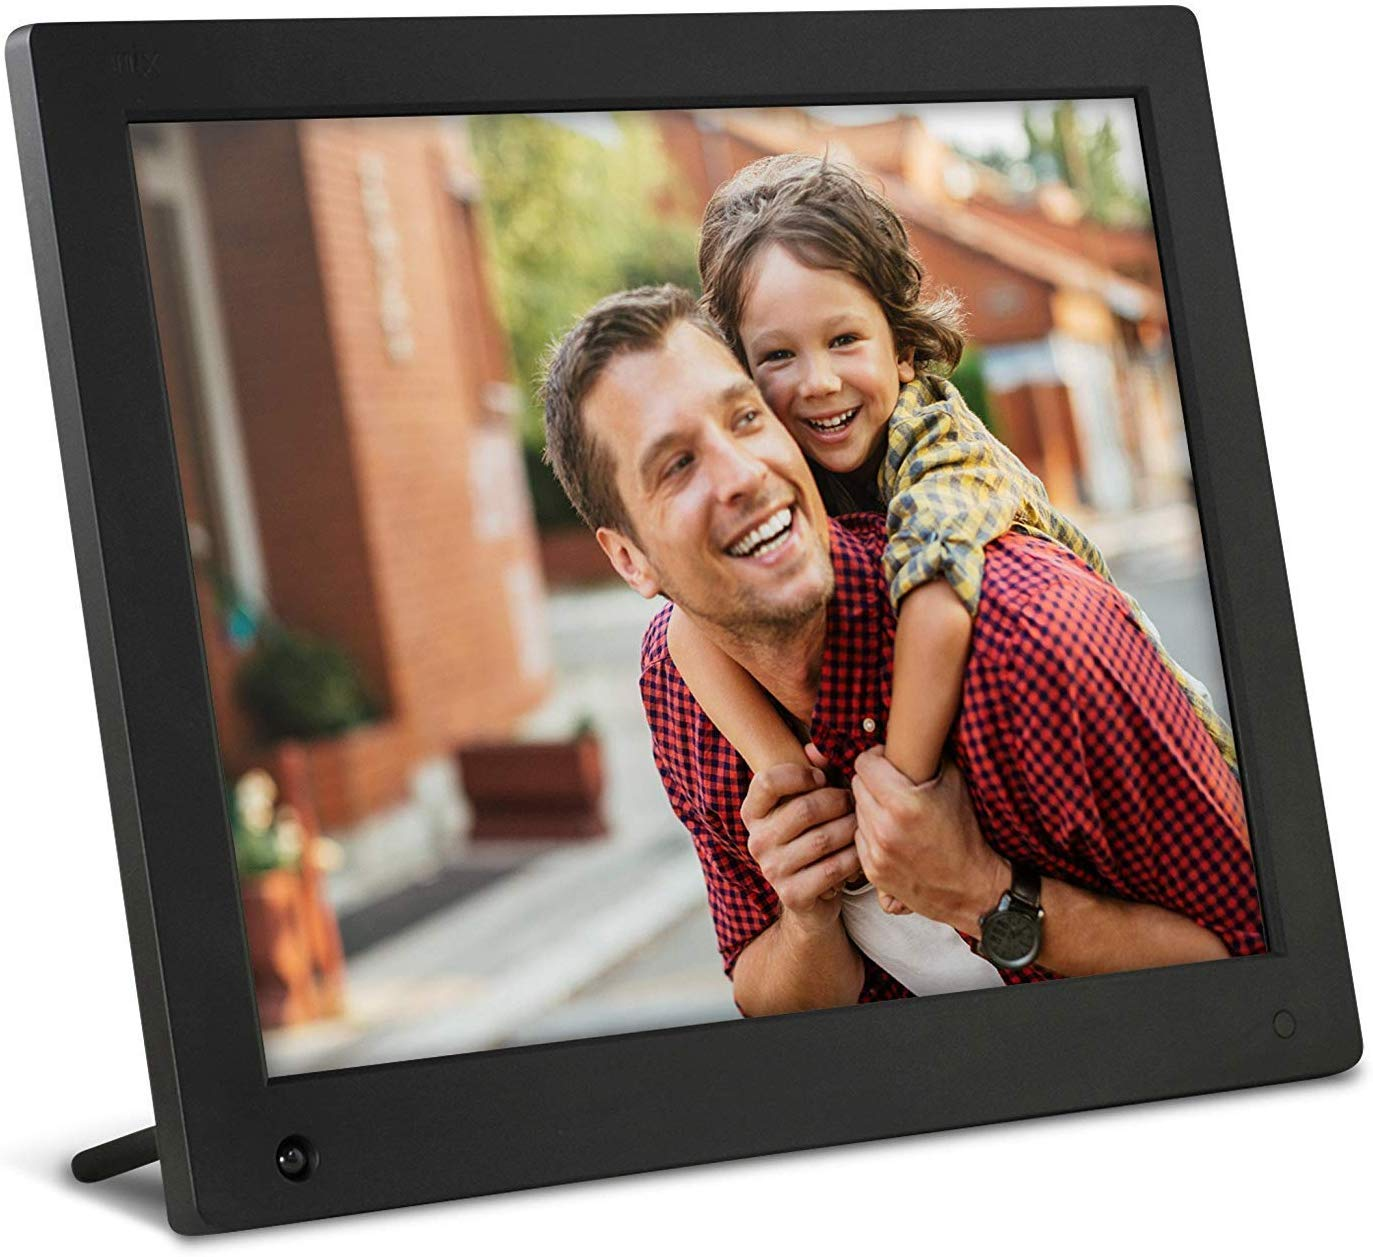 NIX Advance 15-Inch Digital Photo Frame - HD Digital Photo & Video Frame with Motion Sensor, Auto Rotate, Slideshow, Calendar View & USB/SD Card Slot by NIX